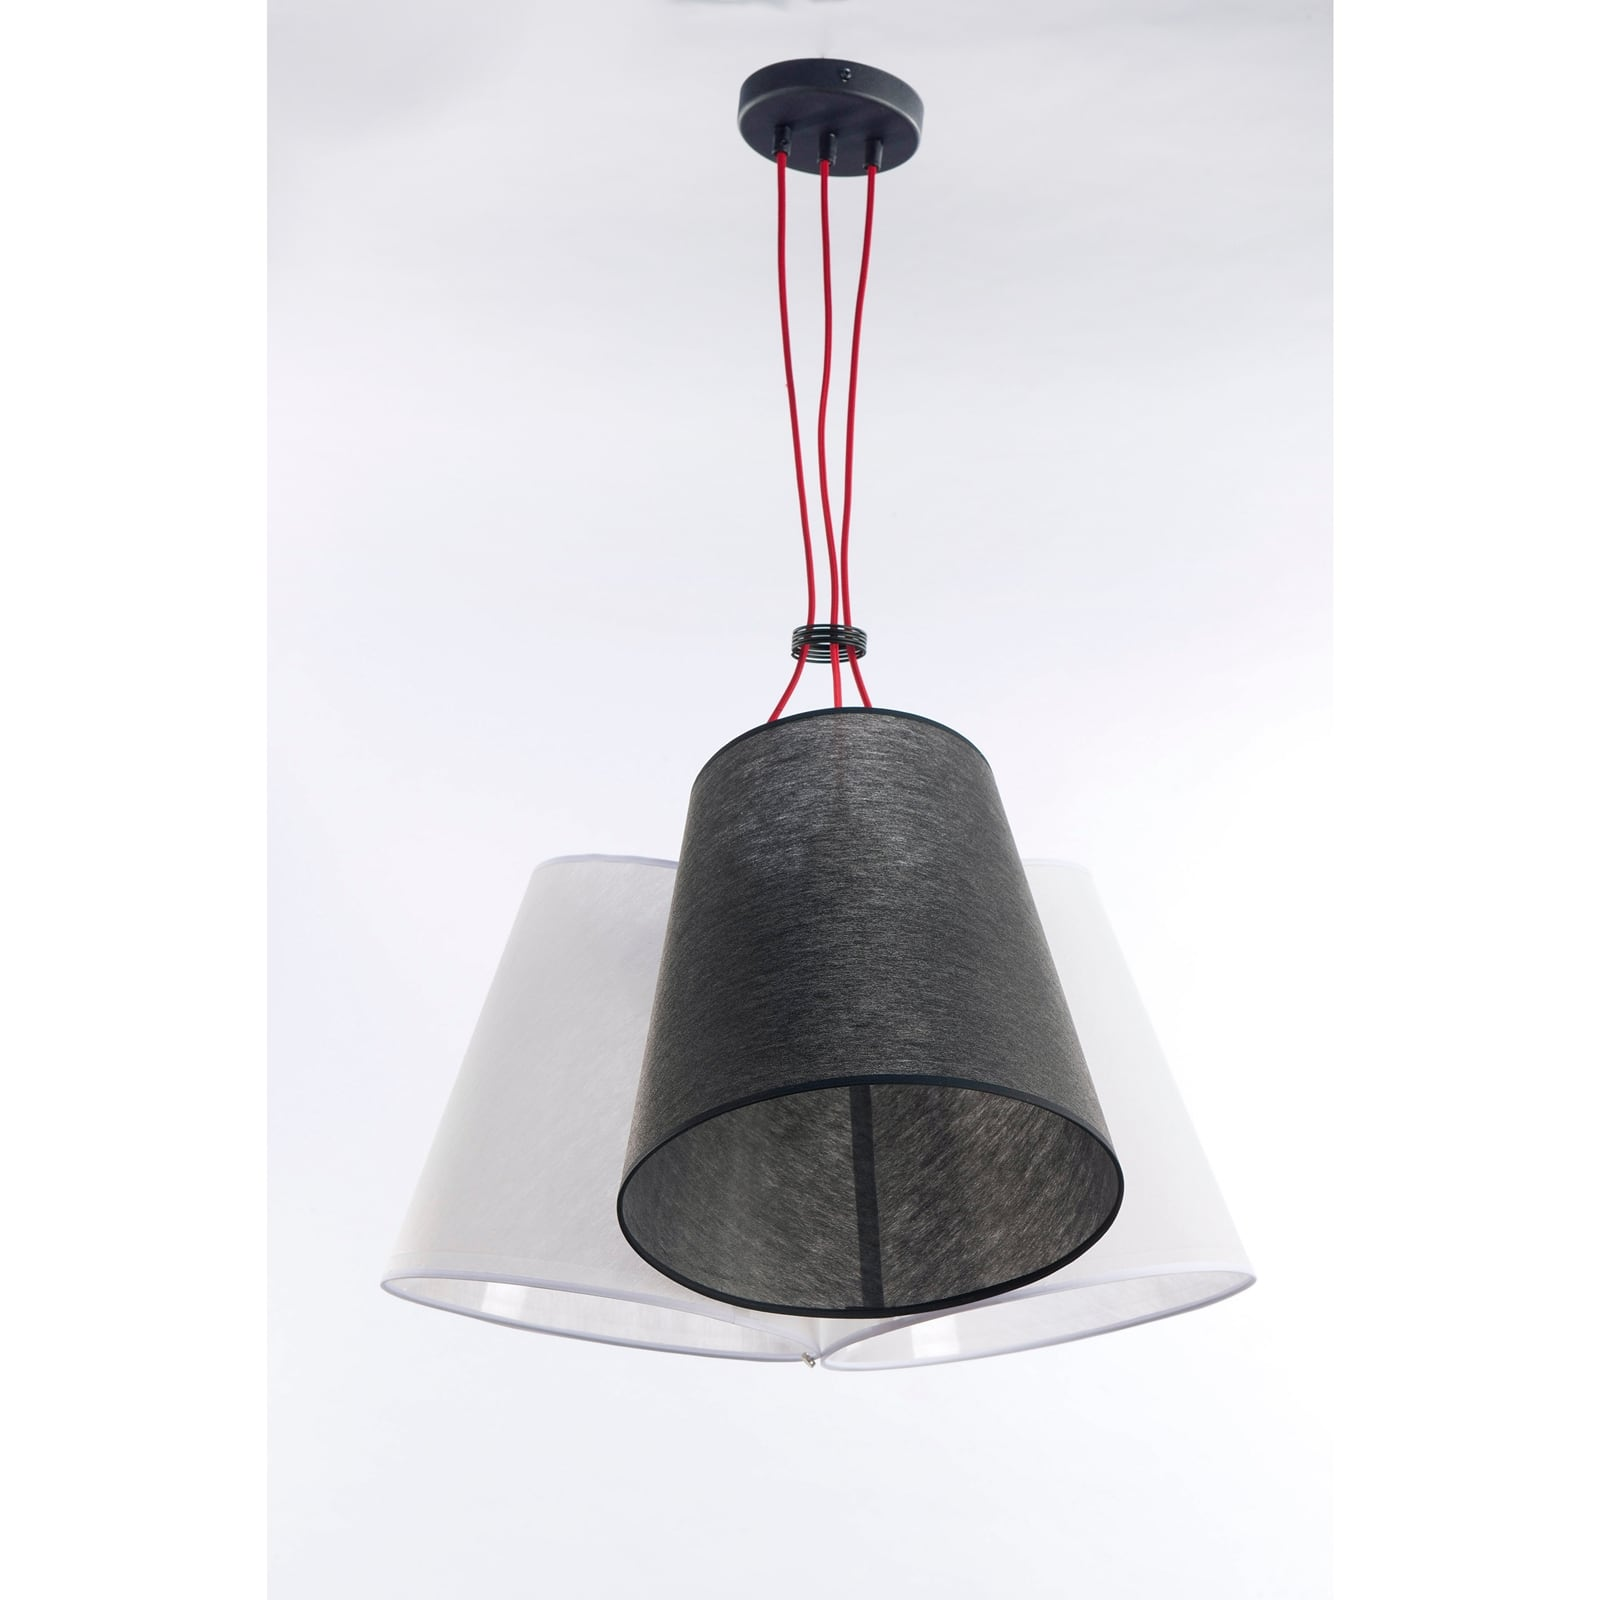 Hanging Lamp NECAR 3 No. 3216